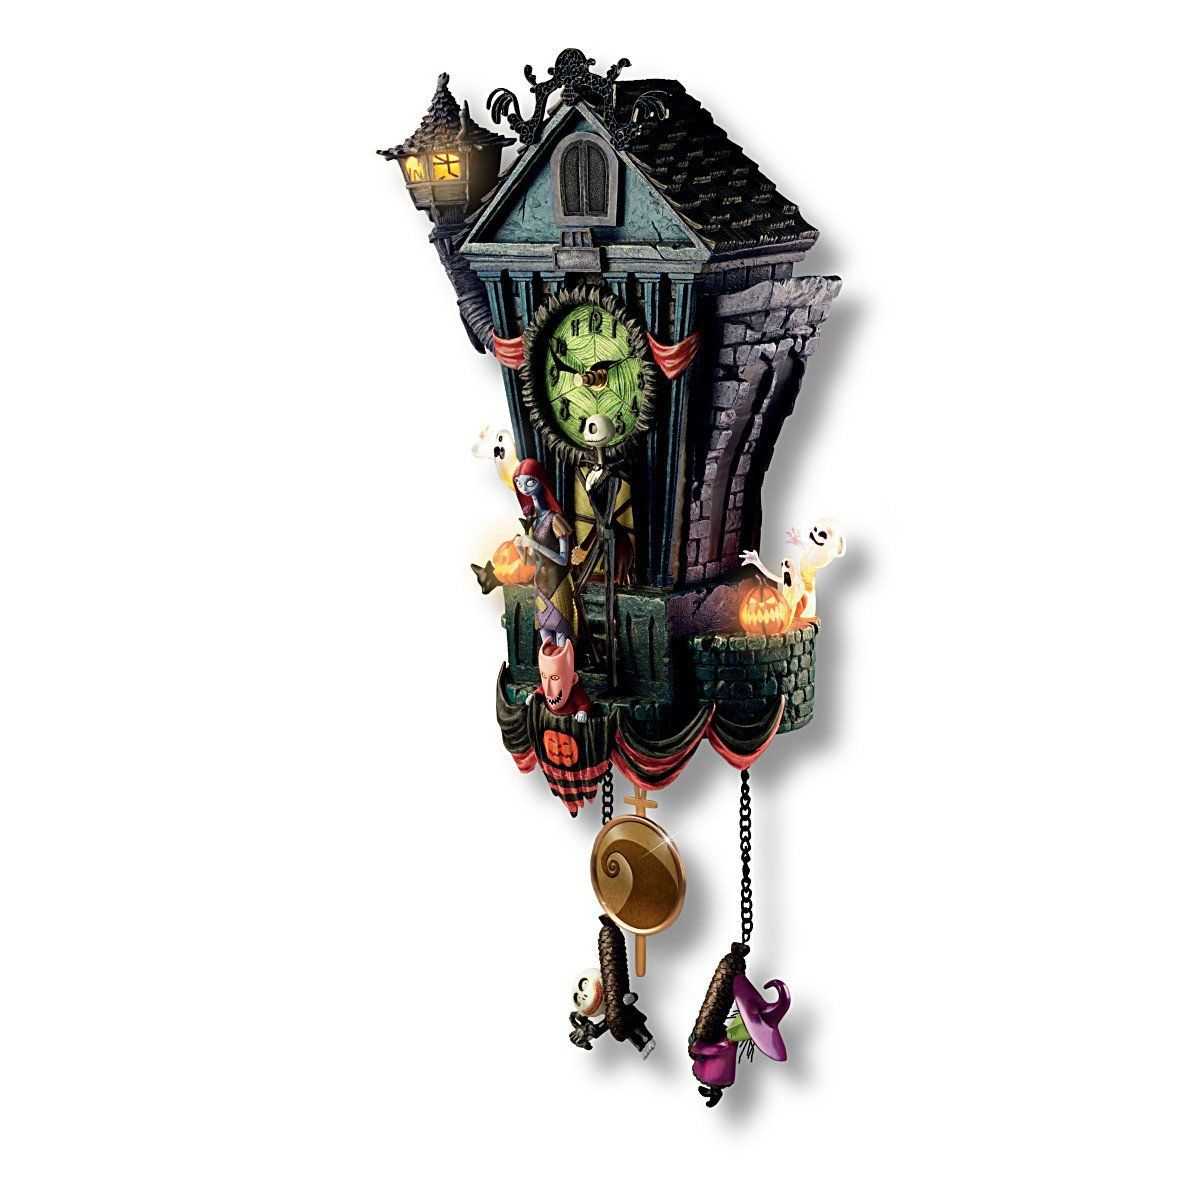 Nightmare Before Christmas Cuckoo Clock: Your Home Will Never Feel ...